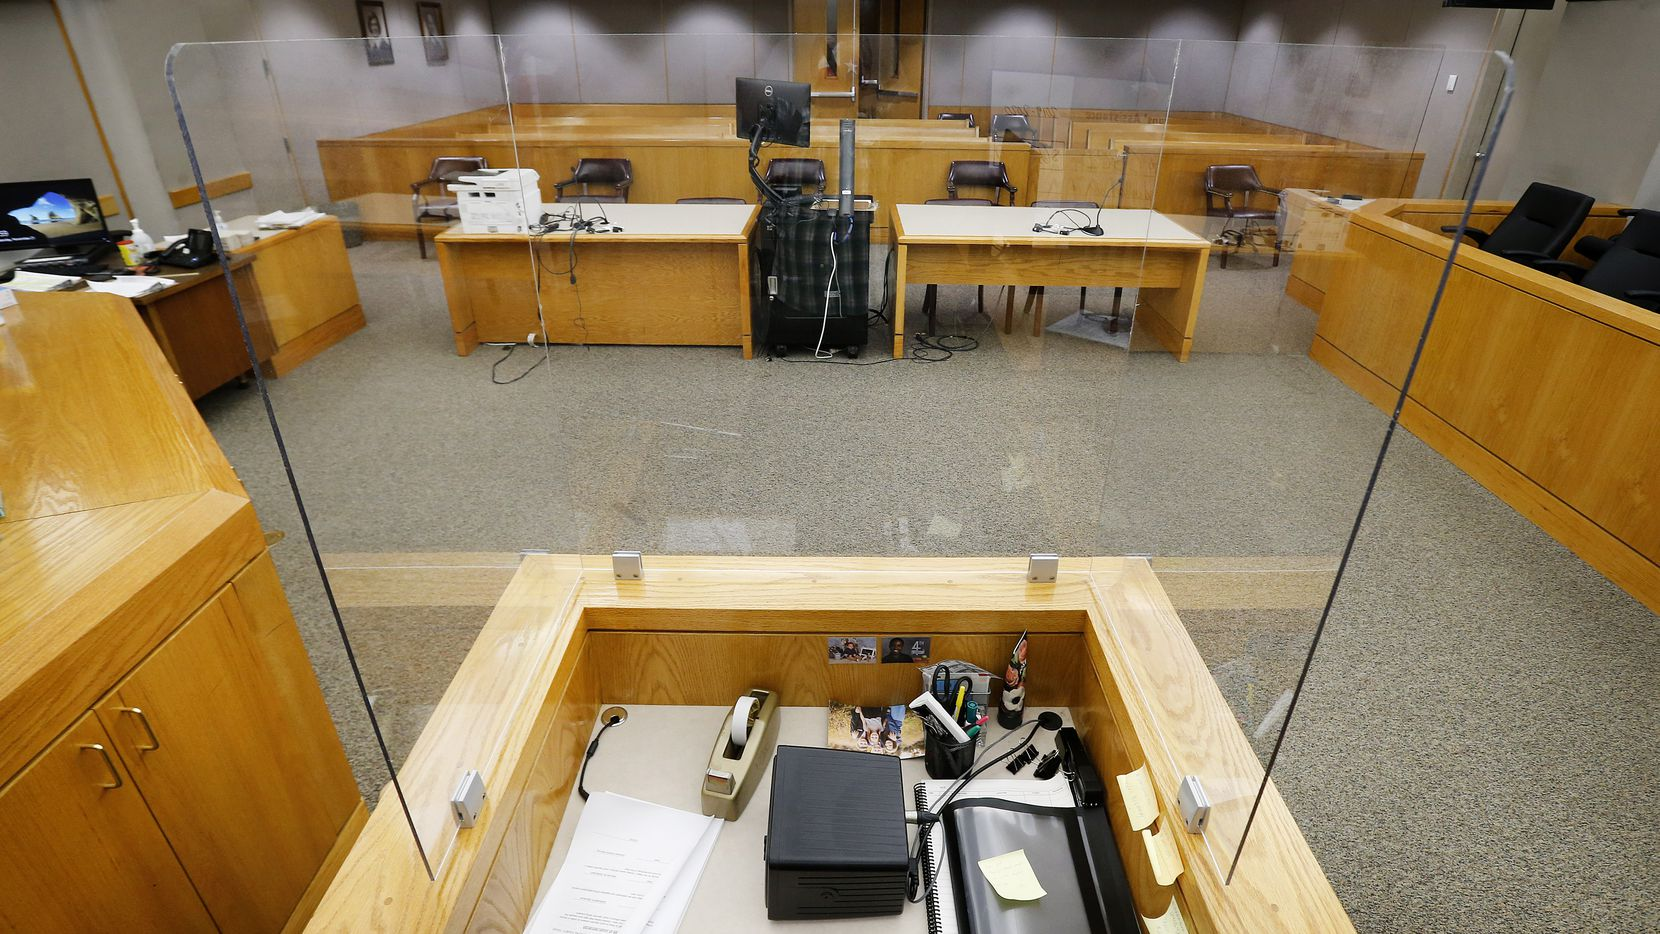 A view from the court reporters plexiglass encased desk in Judge Dominique Collins Criminal District Court 4 at the Frank Crowley Courthouse in Dallas, Saturday, November 21, 2020. The courts are making strides to start summoning juries in a safe way during the COVID-19 pandemic. (Tom Fox/The Dallas Morning News)